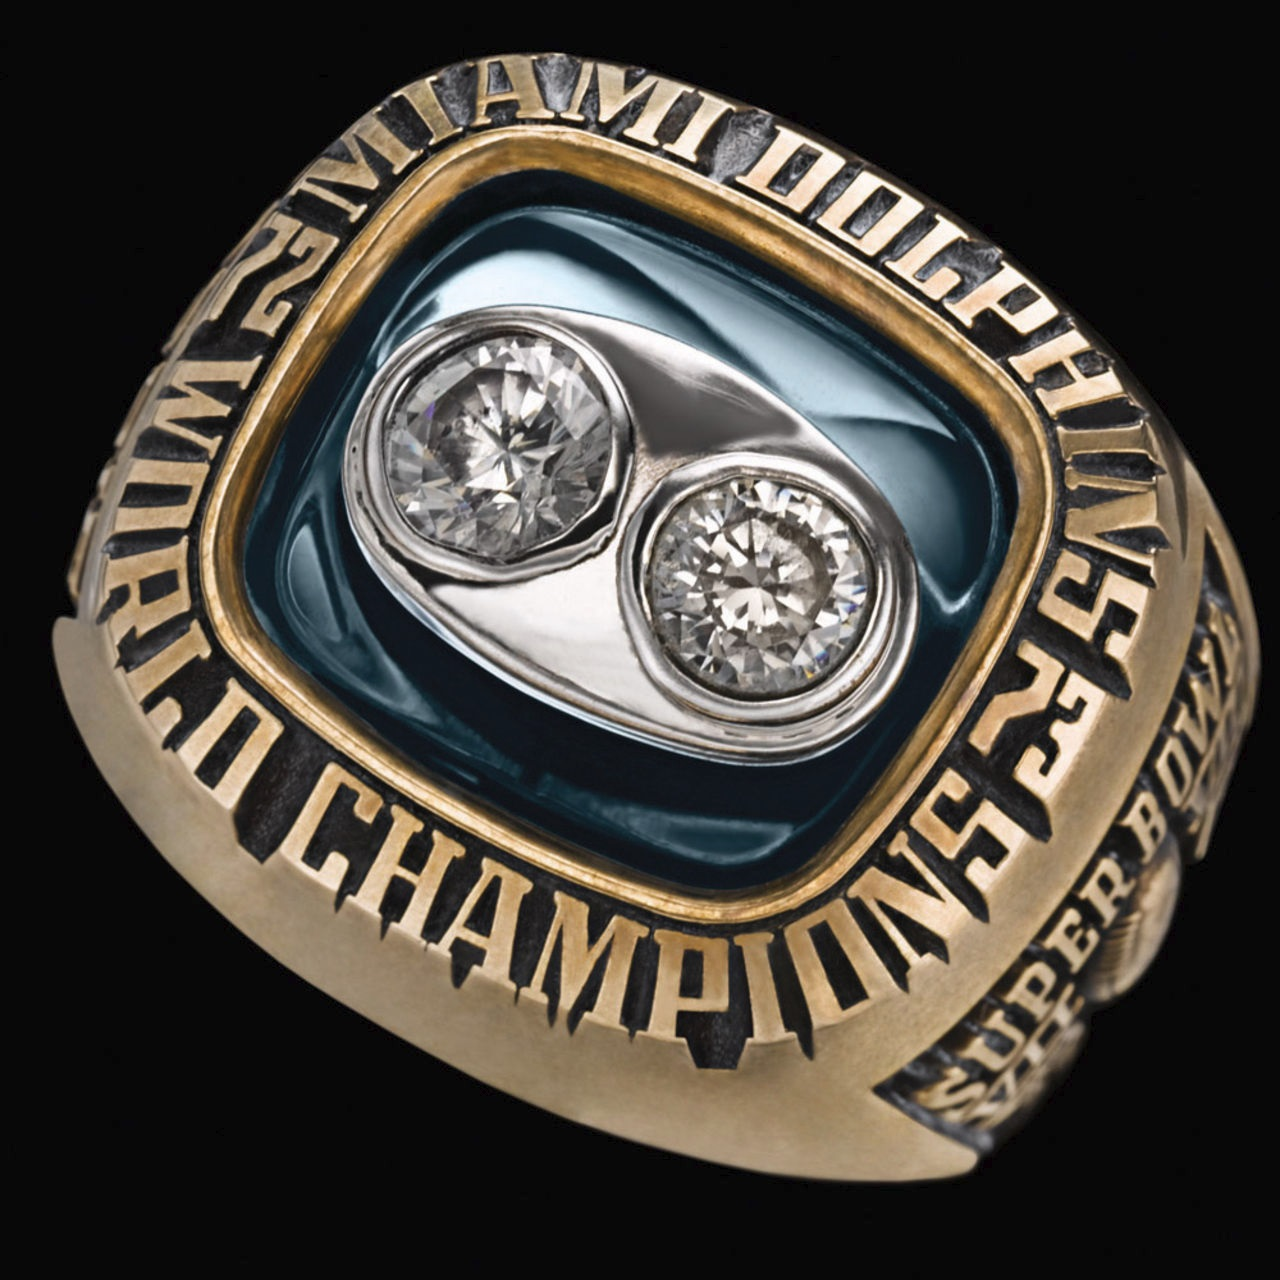 Miami Dolphins 1974 champions ring